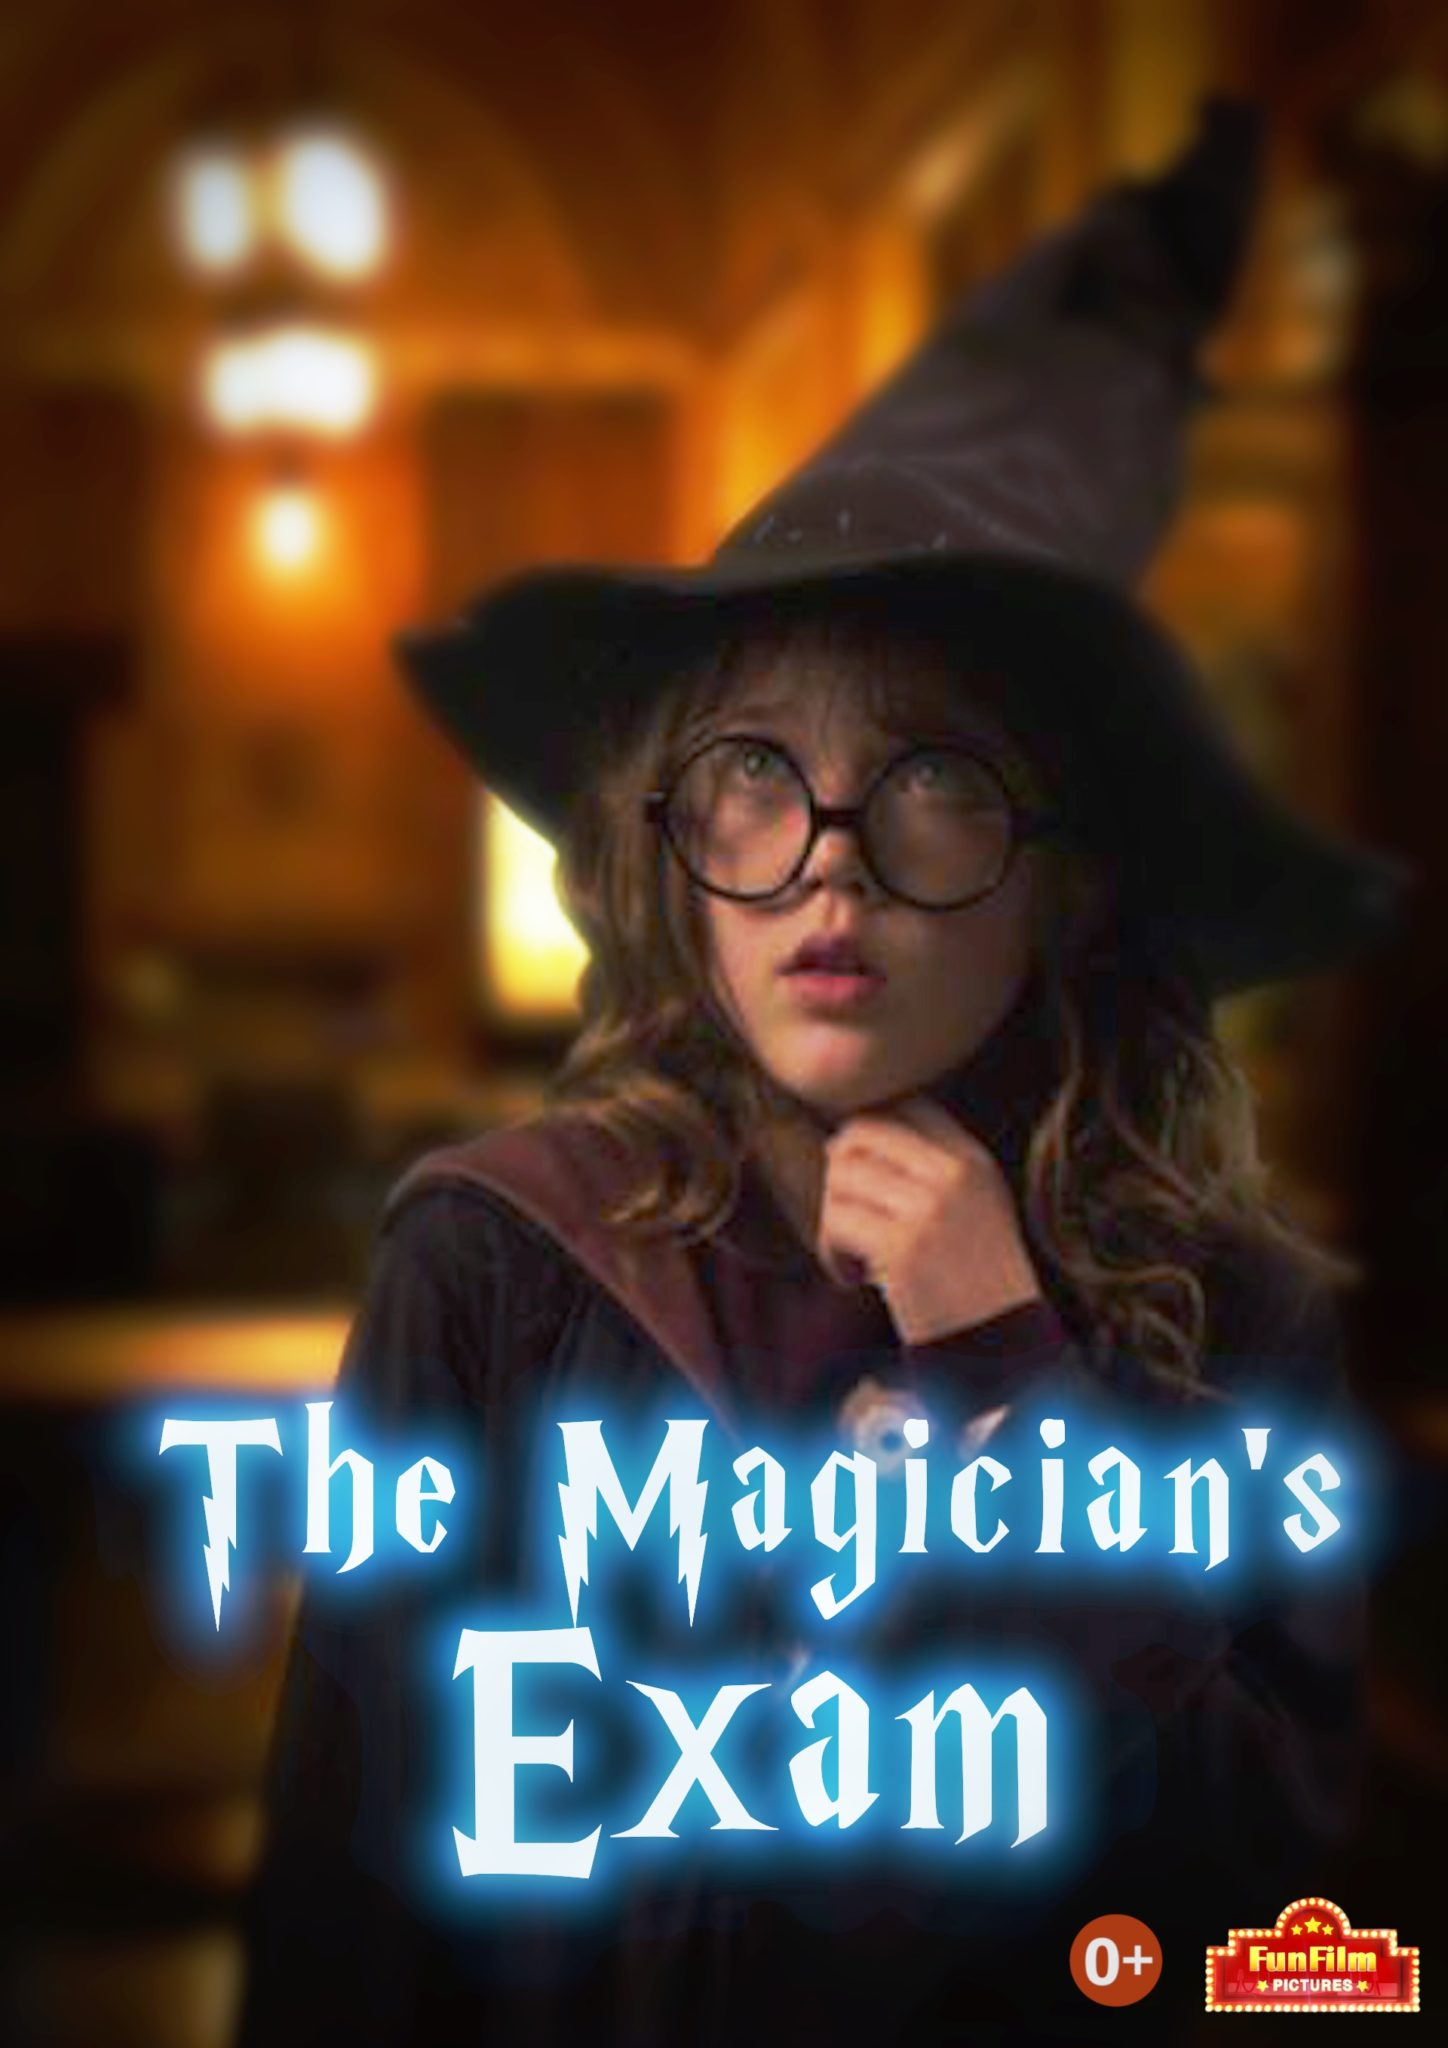 potter poster agata EN 13 07 18 - The Magician's Exam